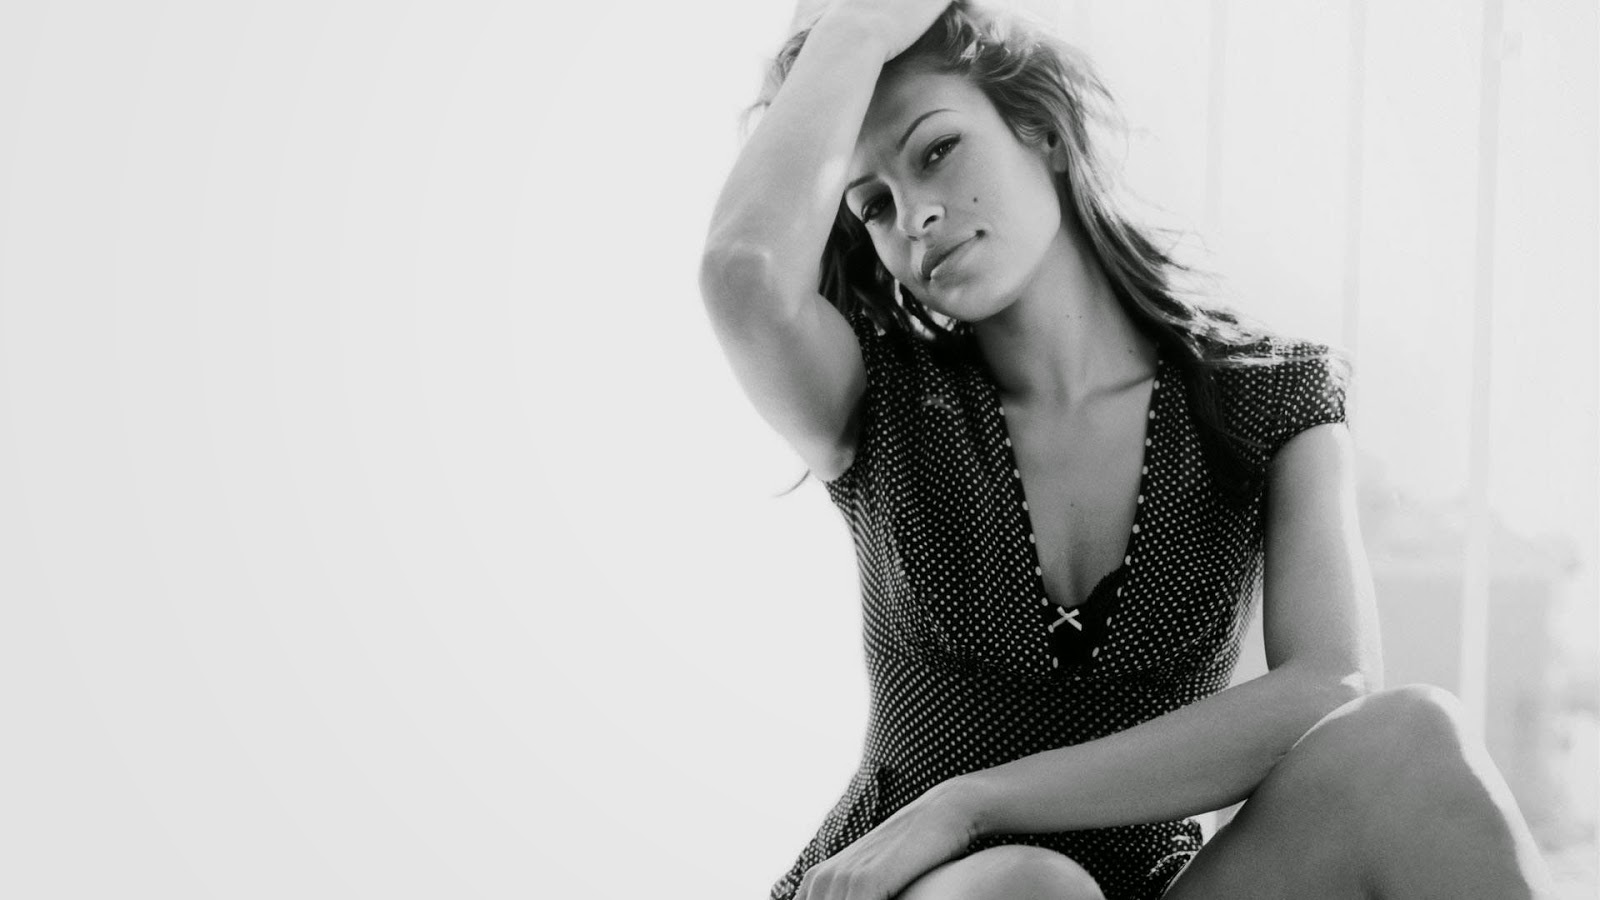 Eva mendes actress nice pose photos